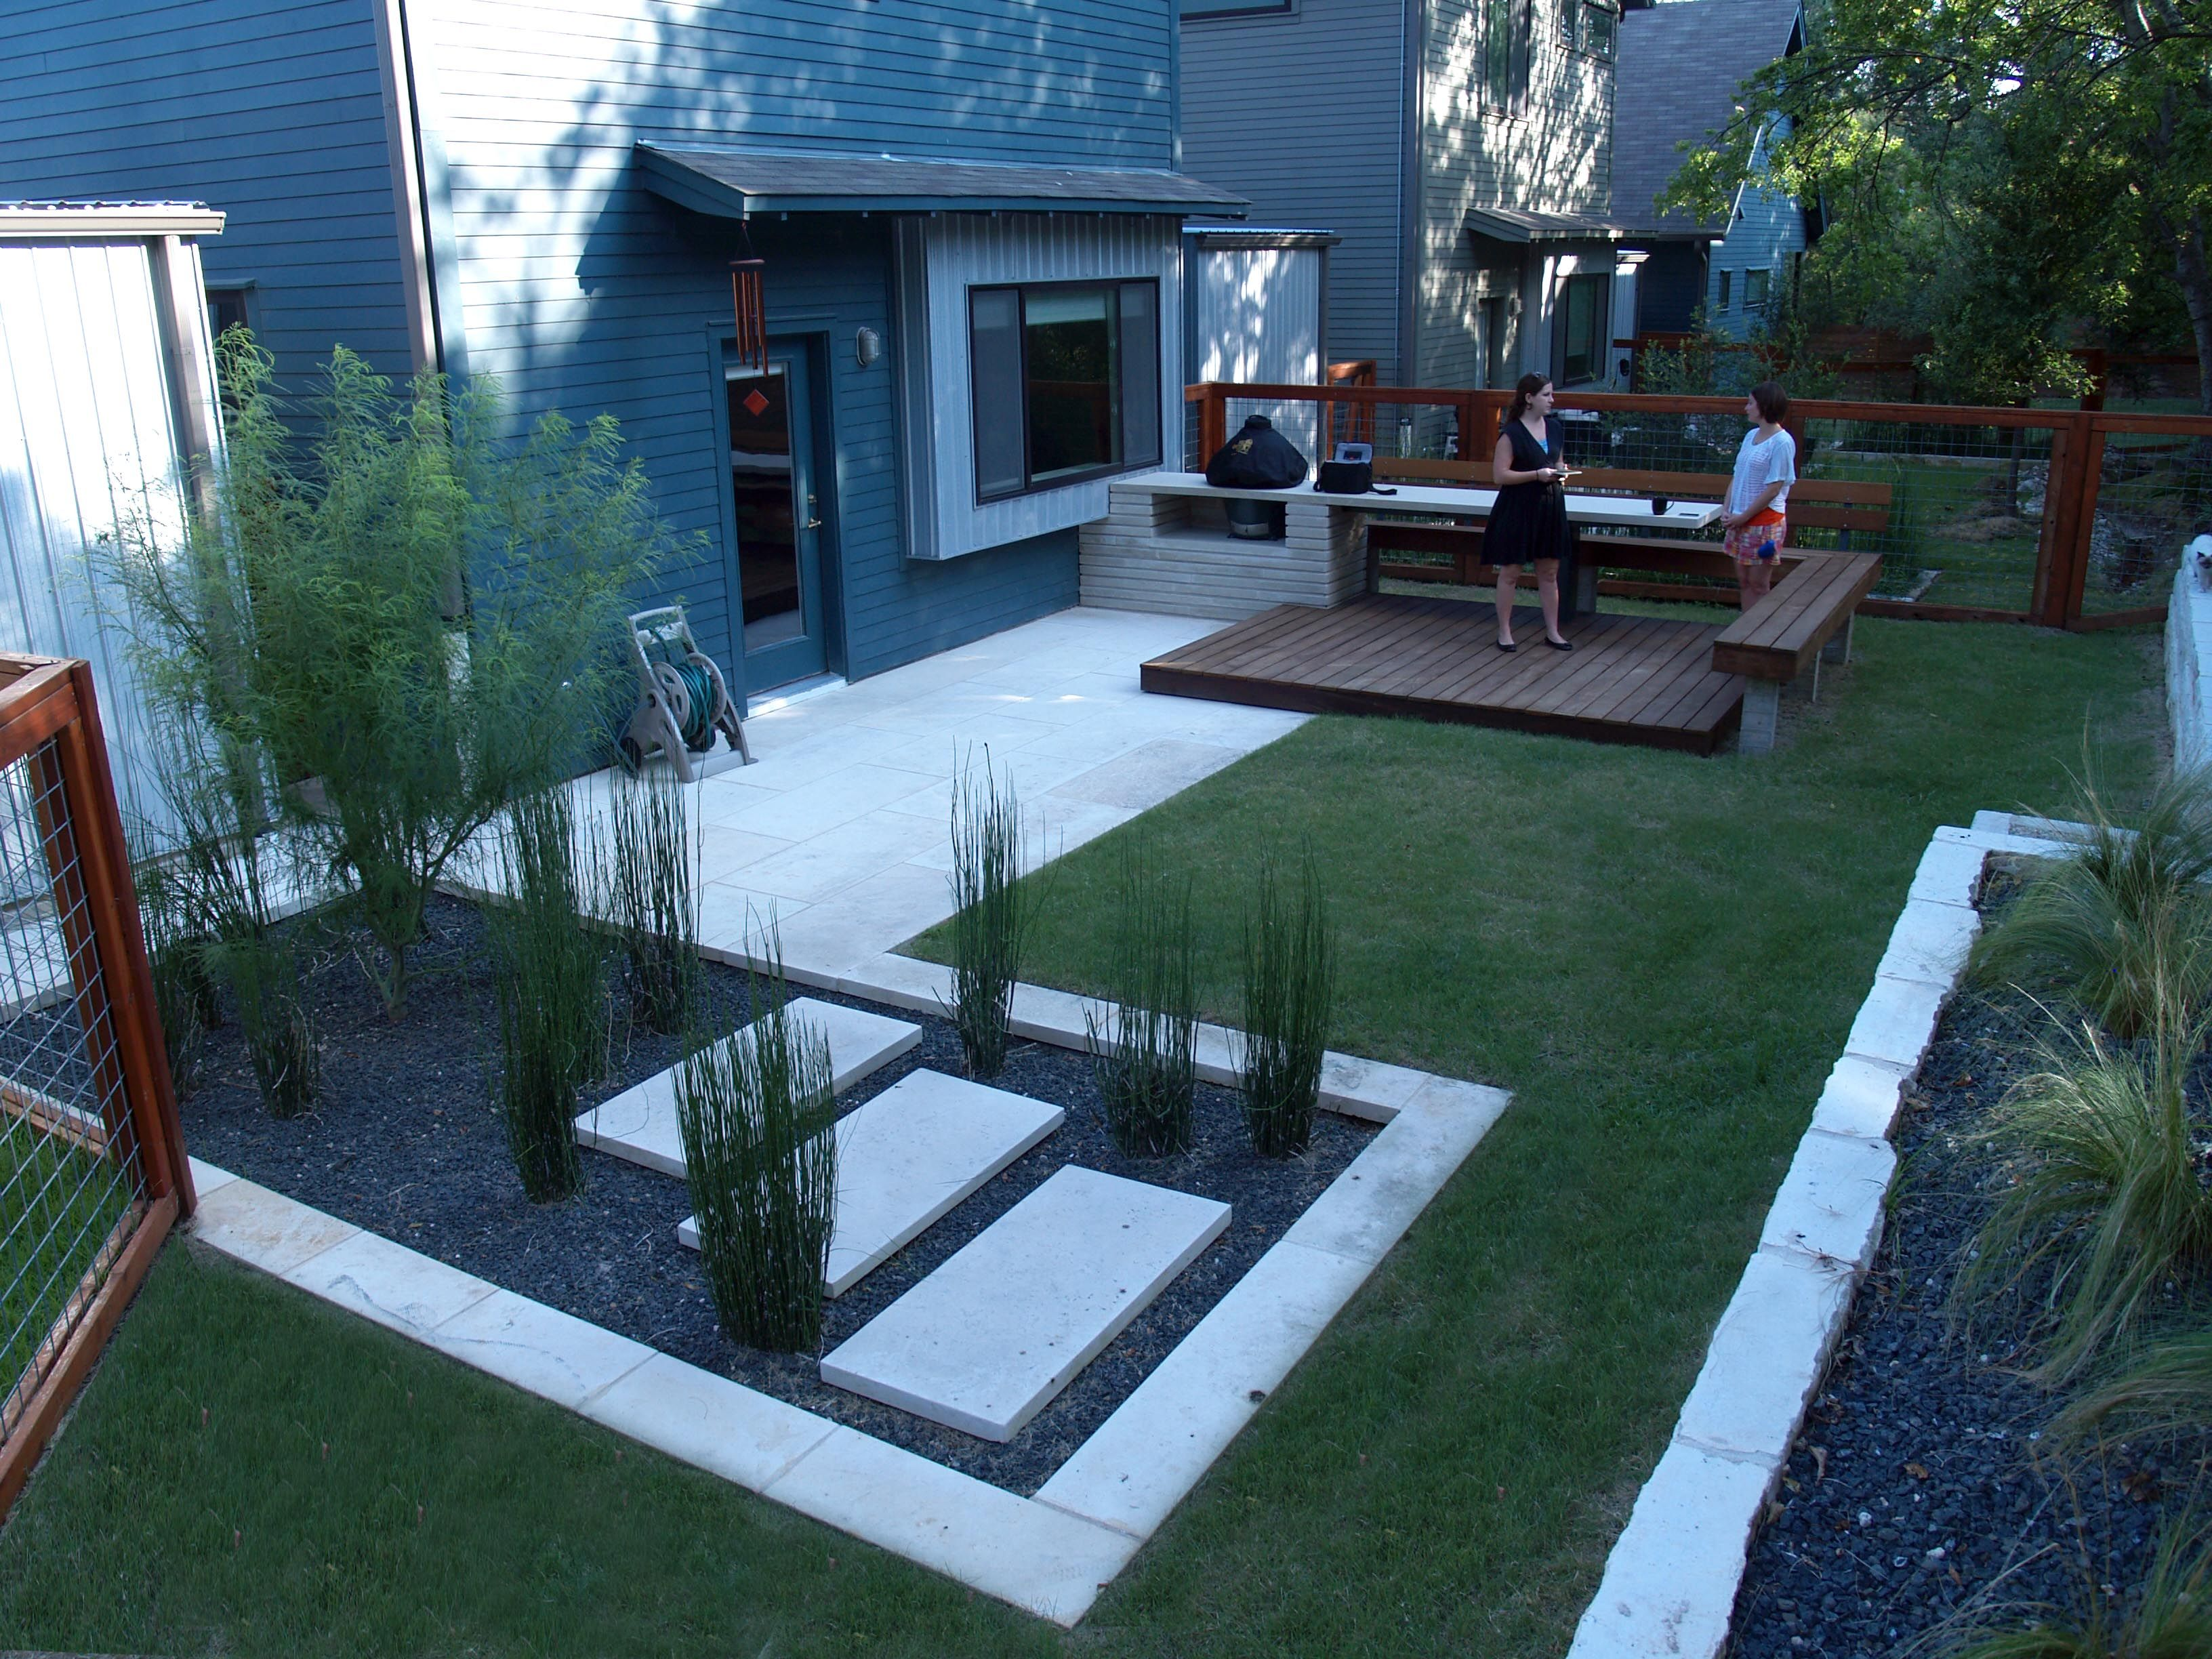 Mesmerizing Modern Landscaping Ideas For Small Backyards Pics Design  Inspiration Part 62